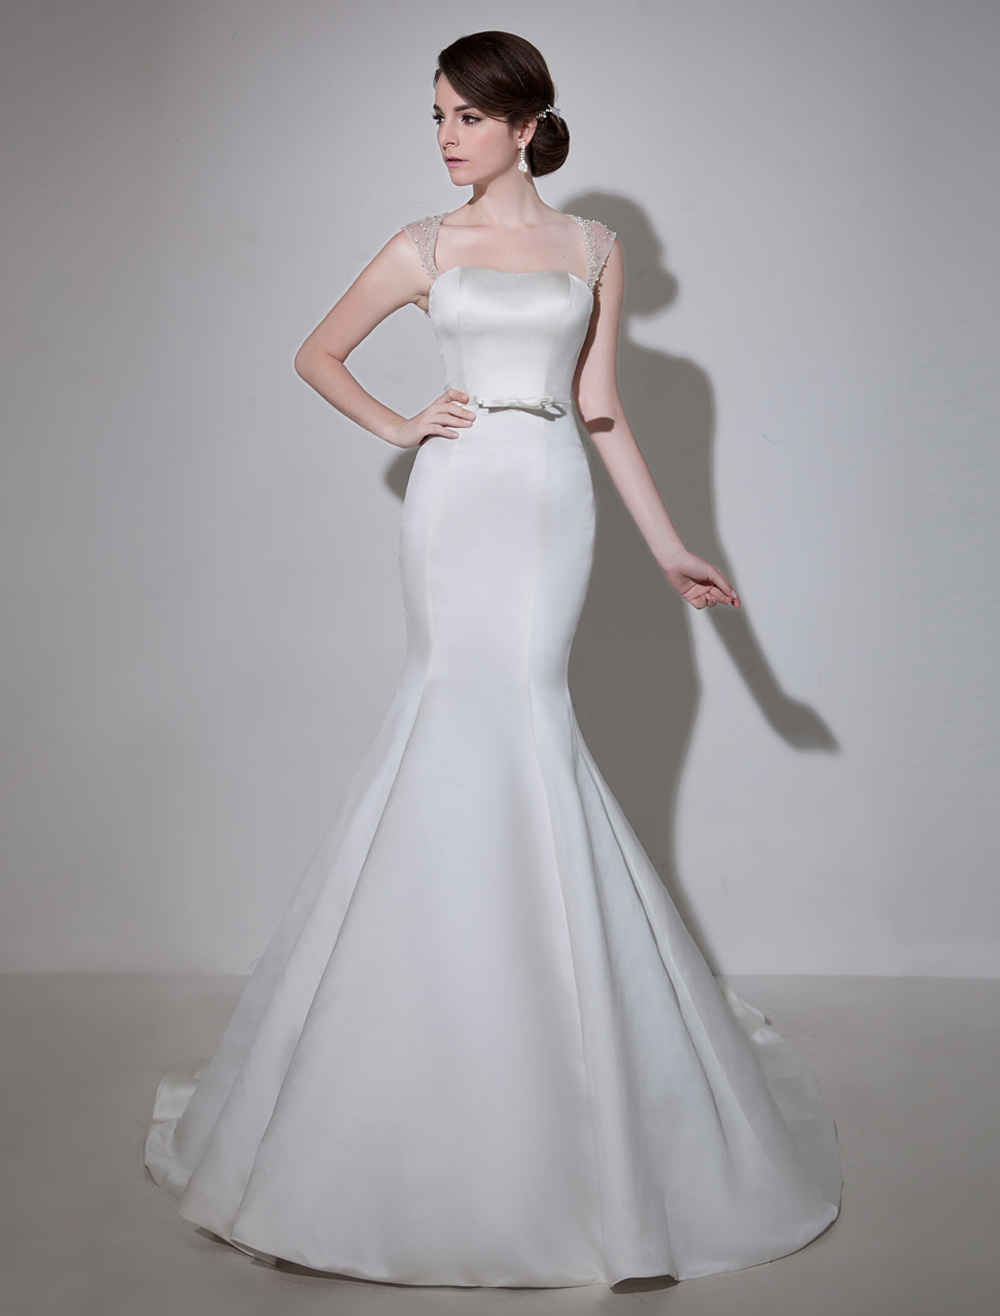 Ivory Off-The-Shoulder Satin Bridal Wedding Gown with Keyhole Neck and Court Train Milanoo